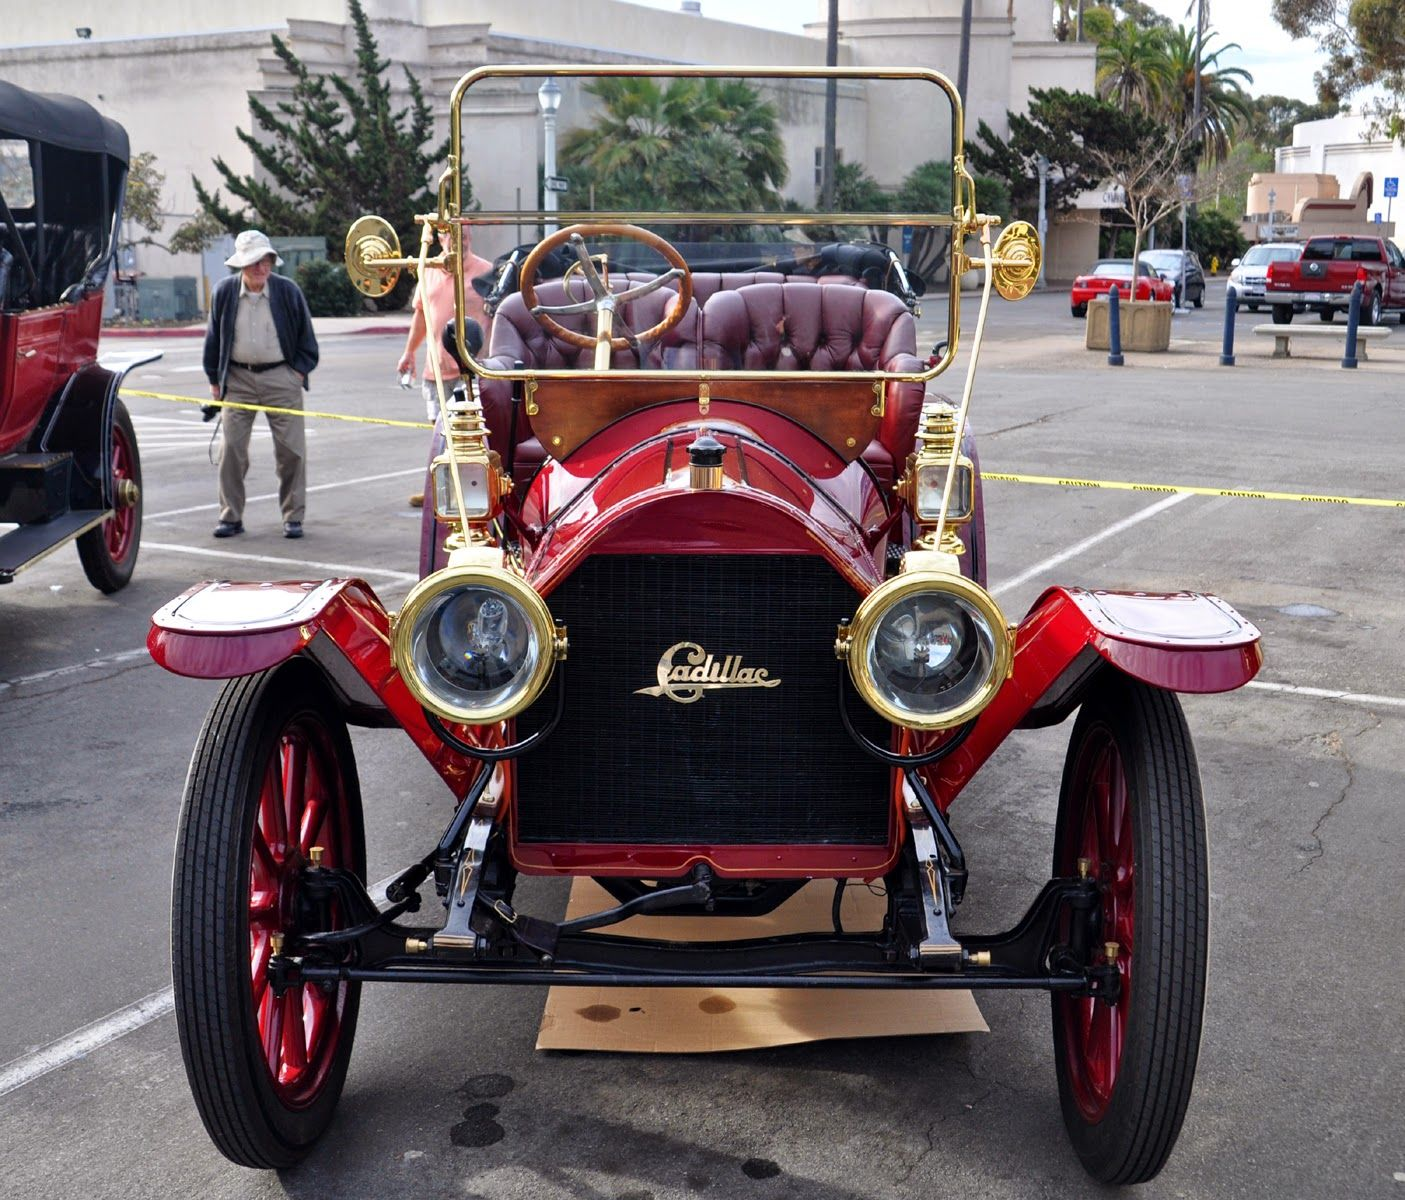 Just a car guy : Buick | Кадиллак | Pinterest | Buick and Cars